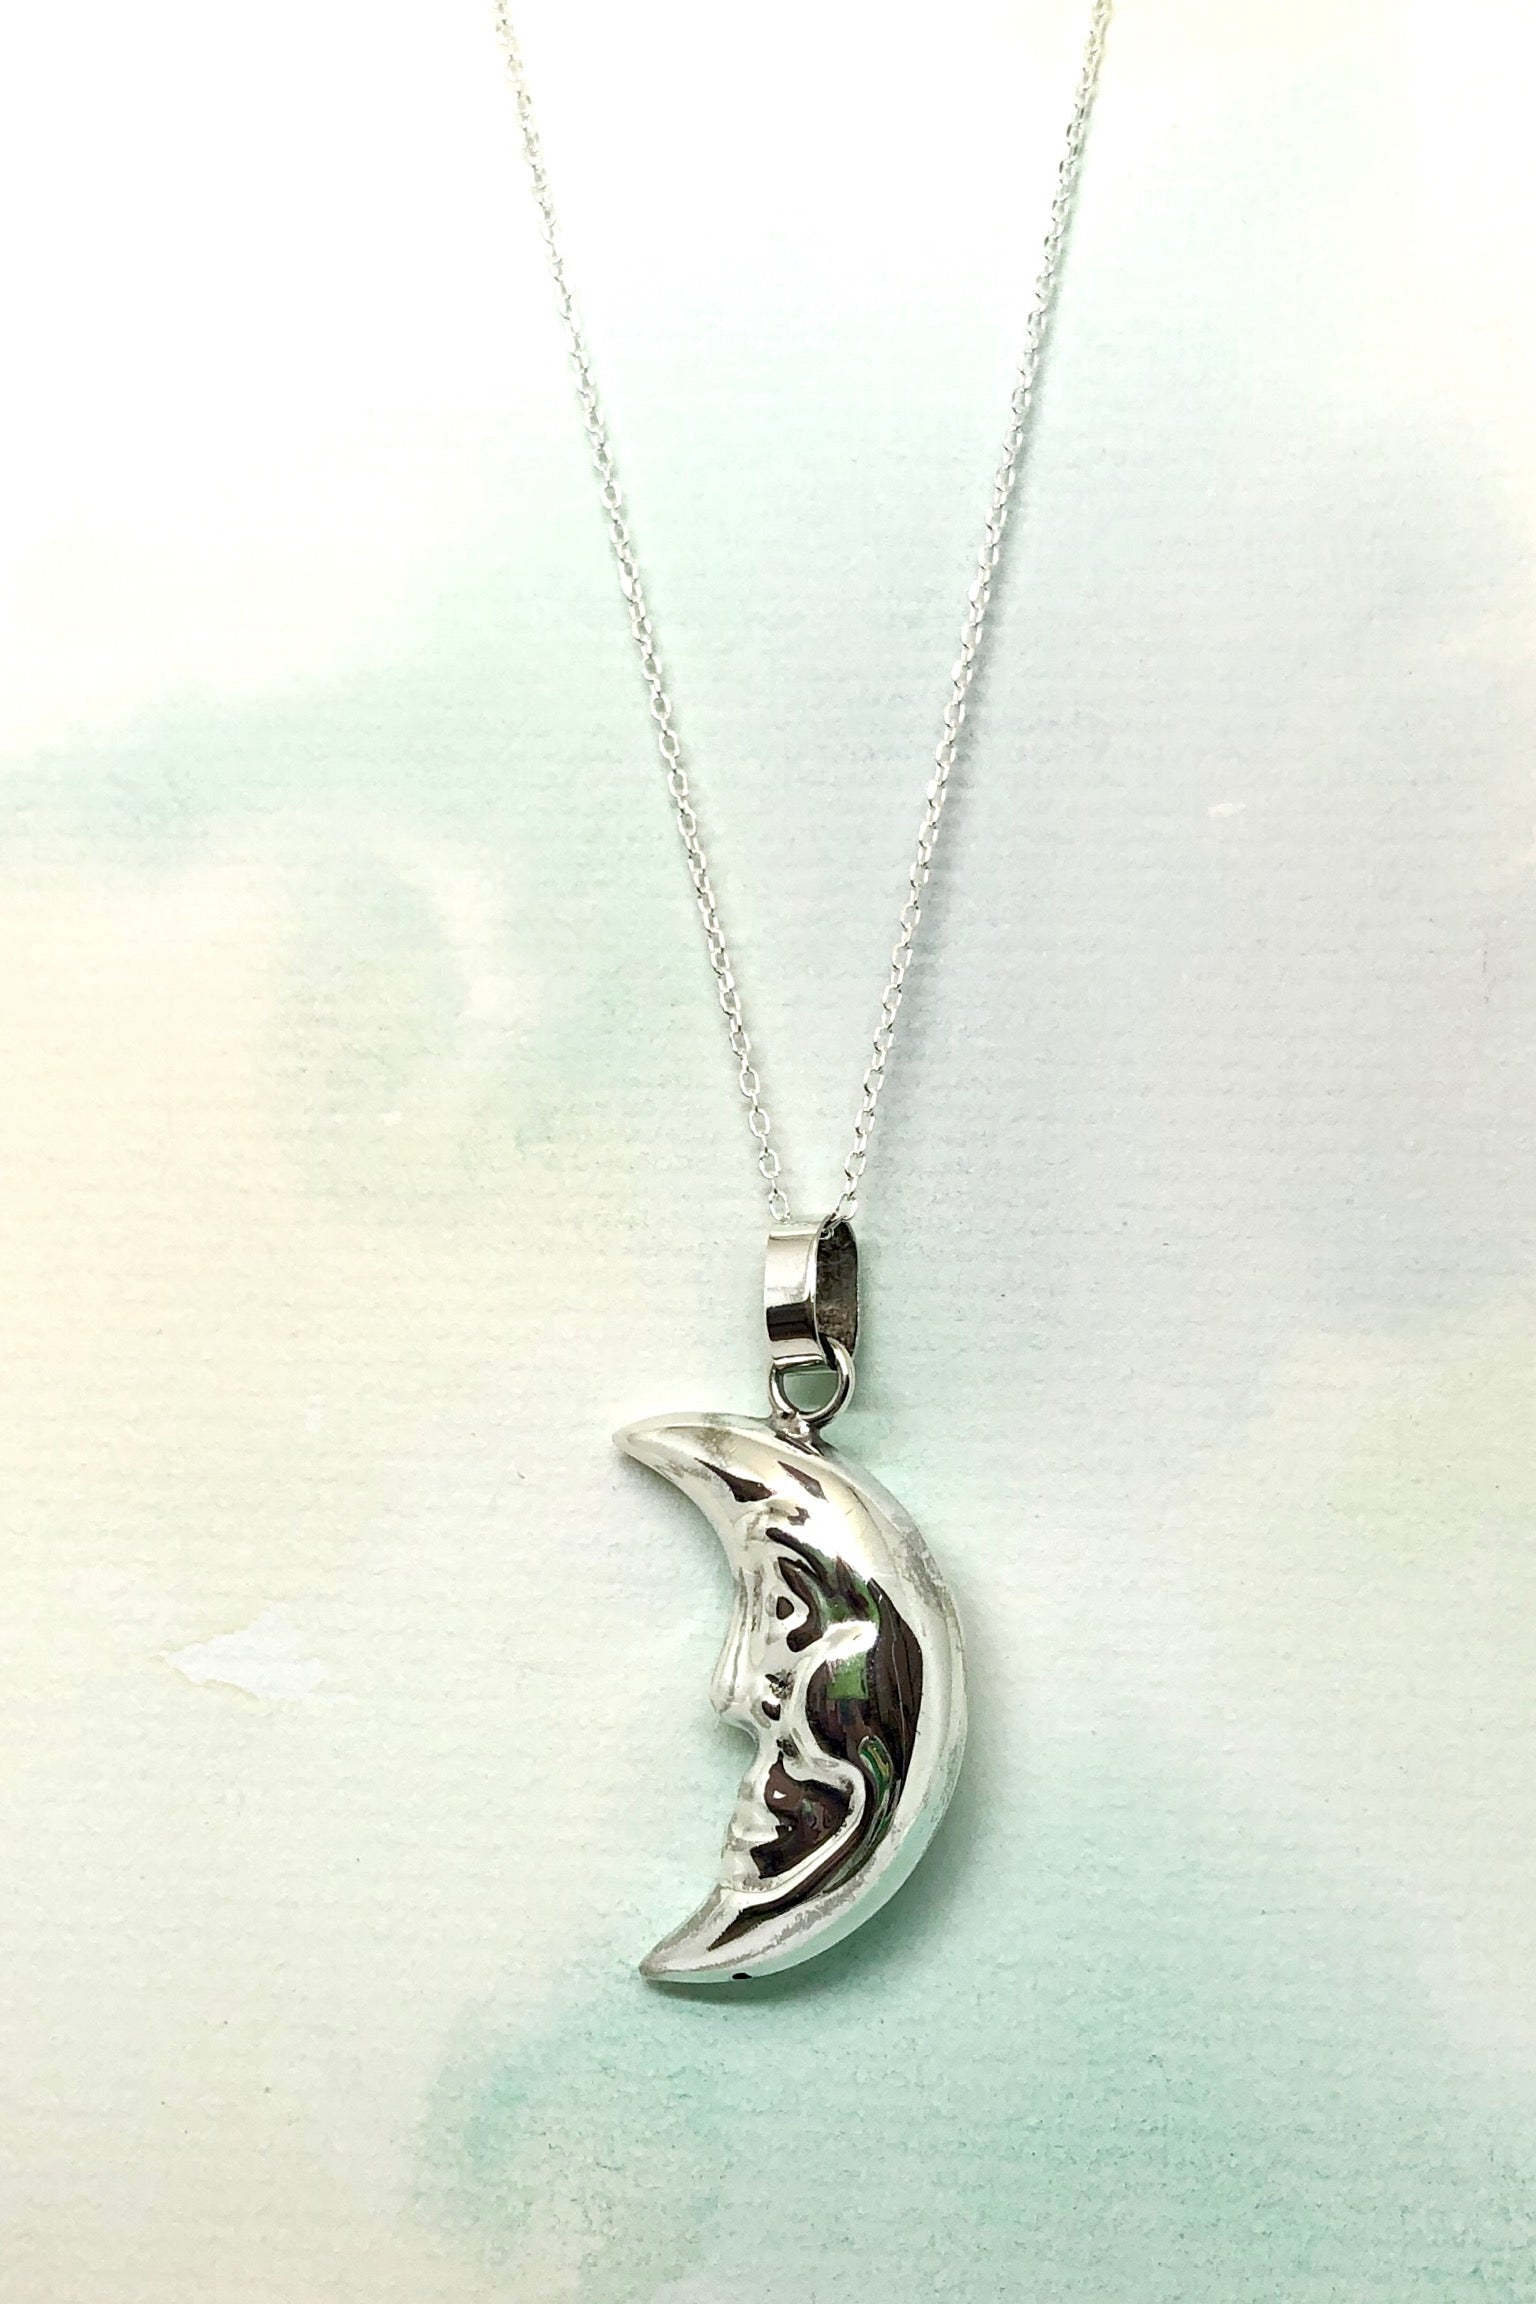 This Echo Man in the Moon Pendant is a vintage 925 silver pendant featuring a faced moon.